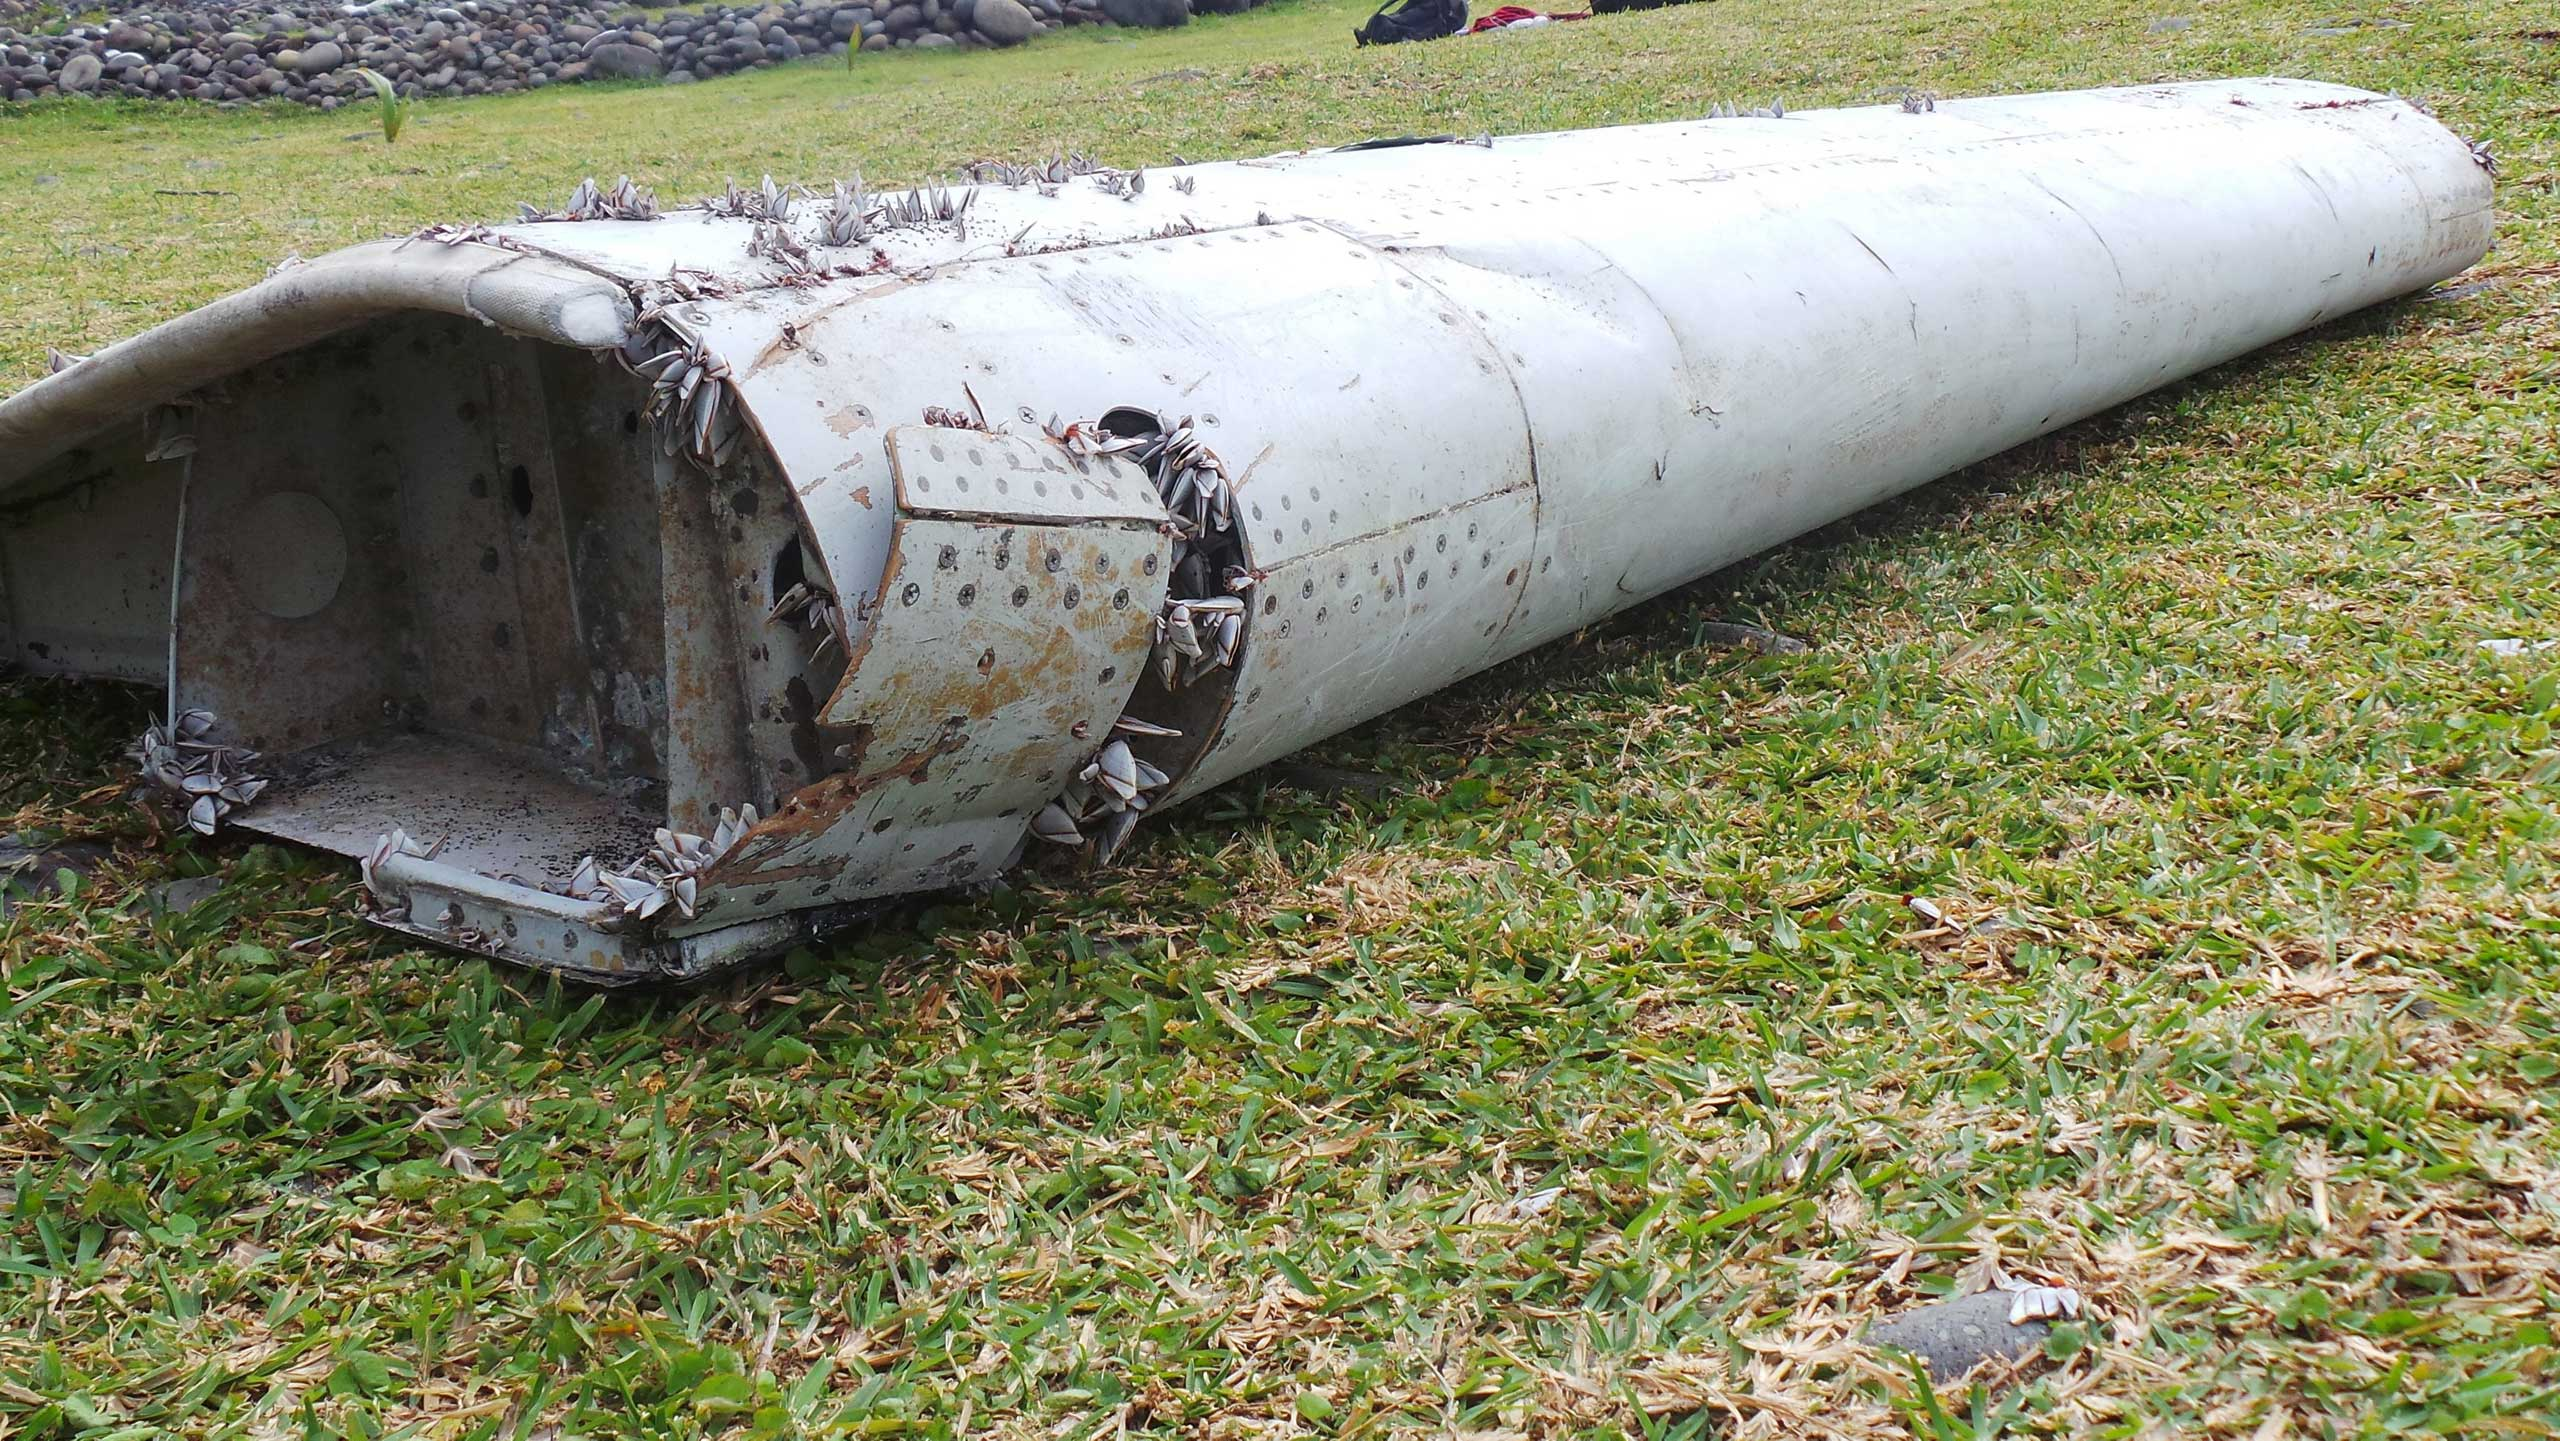 A piece of debris from an unidentified aircraft apparently washed ashore in Saint-Andre de la Reunion, eastern La Reunion island, France, on July 29, 2015.